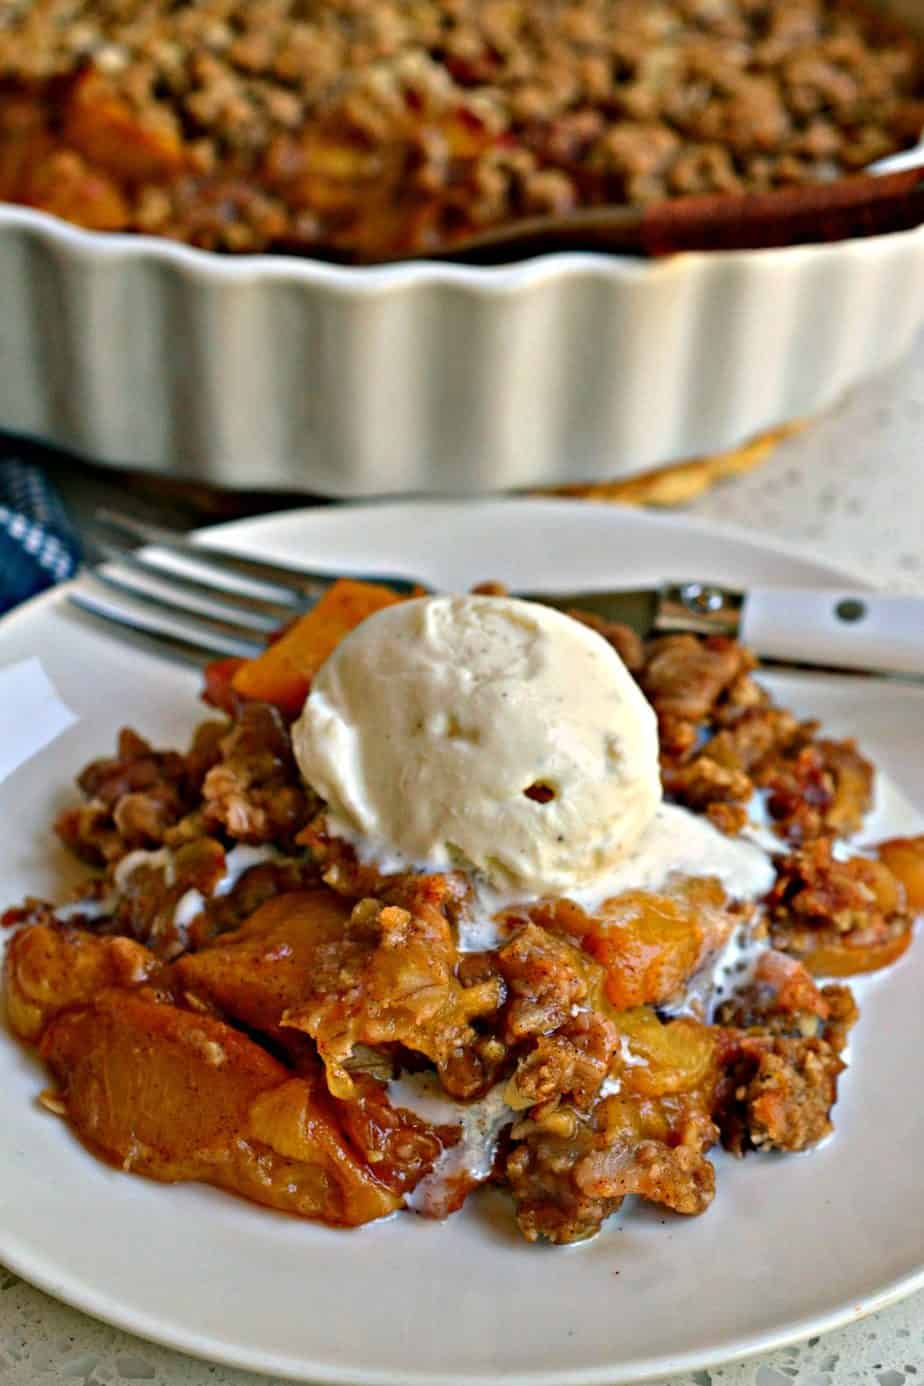 This delicious peach crisp is best served warm with a scoop of vanilla ice cream.